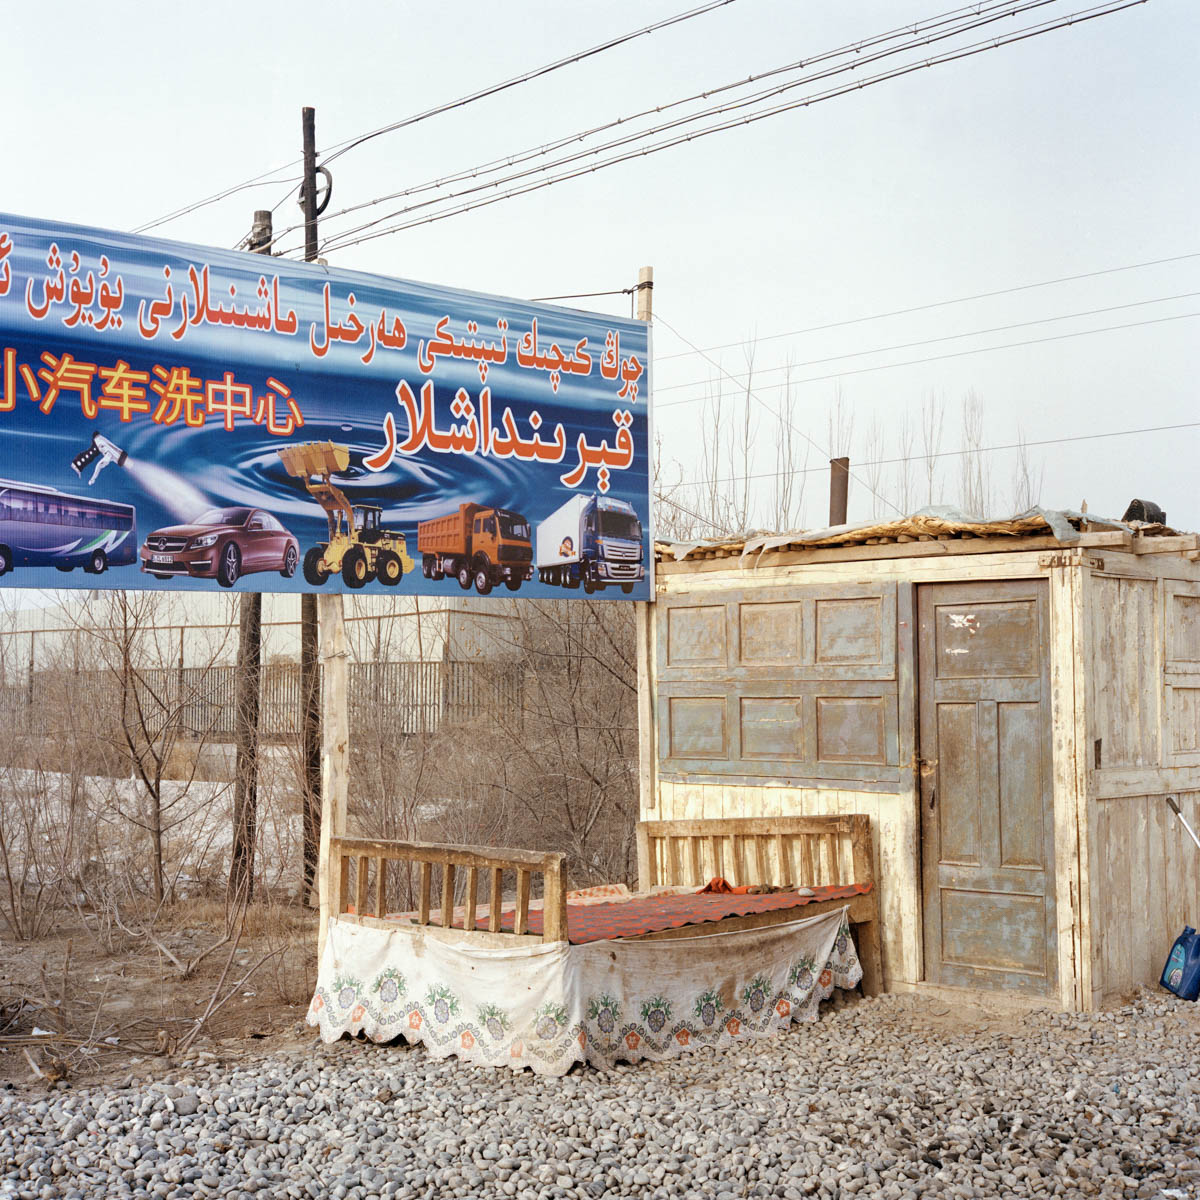 Roadside hut - Roadside hut and advertisement board for caterpillars trucks and cars. A flagrant contrast beween, the ancient times and the modern ones. Hotan, Xinjiang, China 2012. - Copyright © © S. Borcard - N. Metraux -